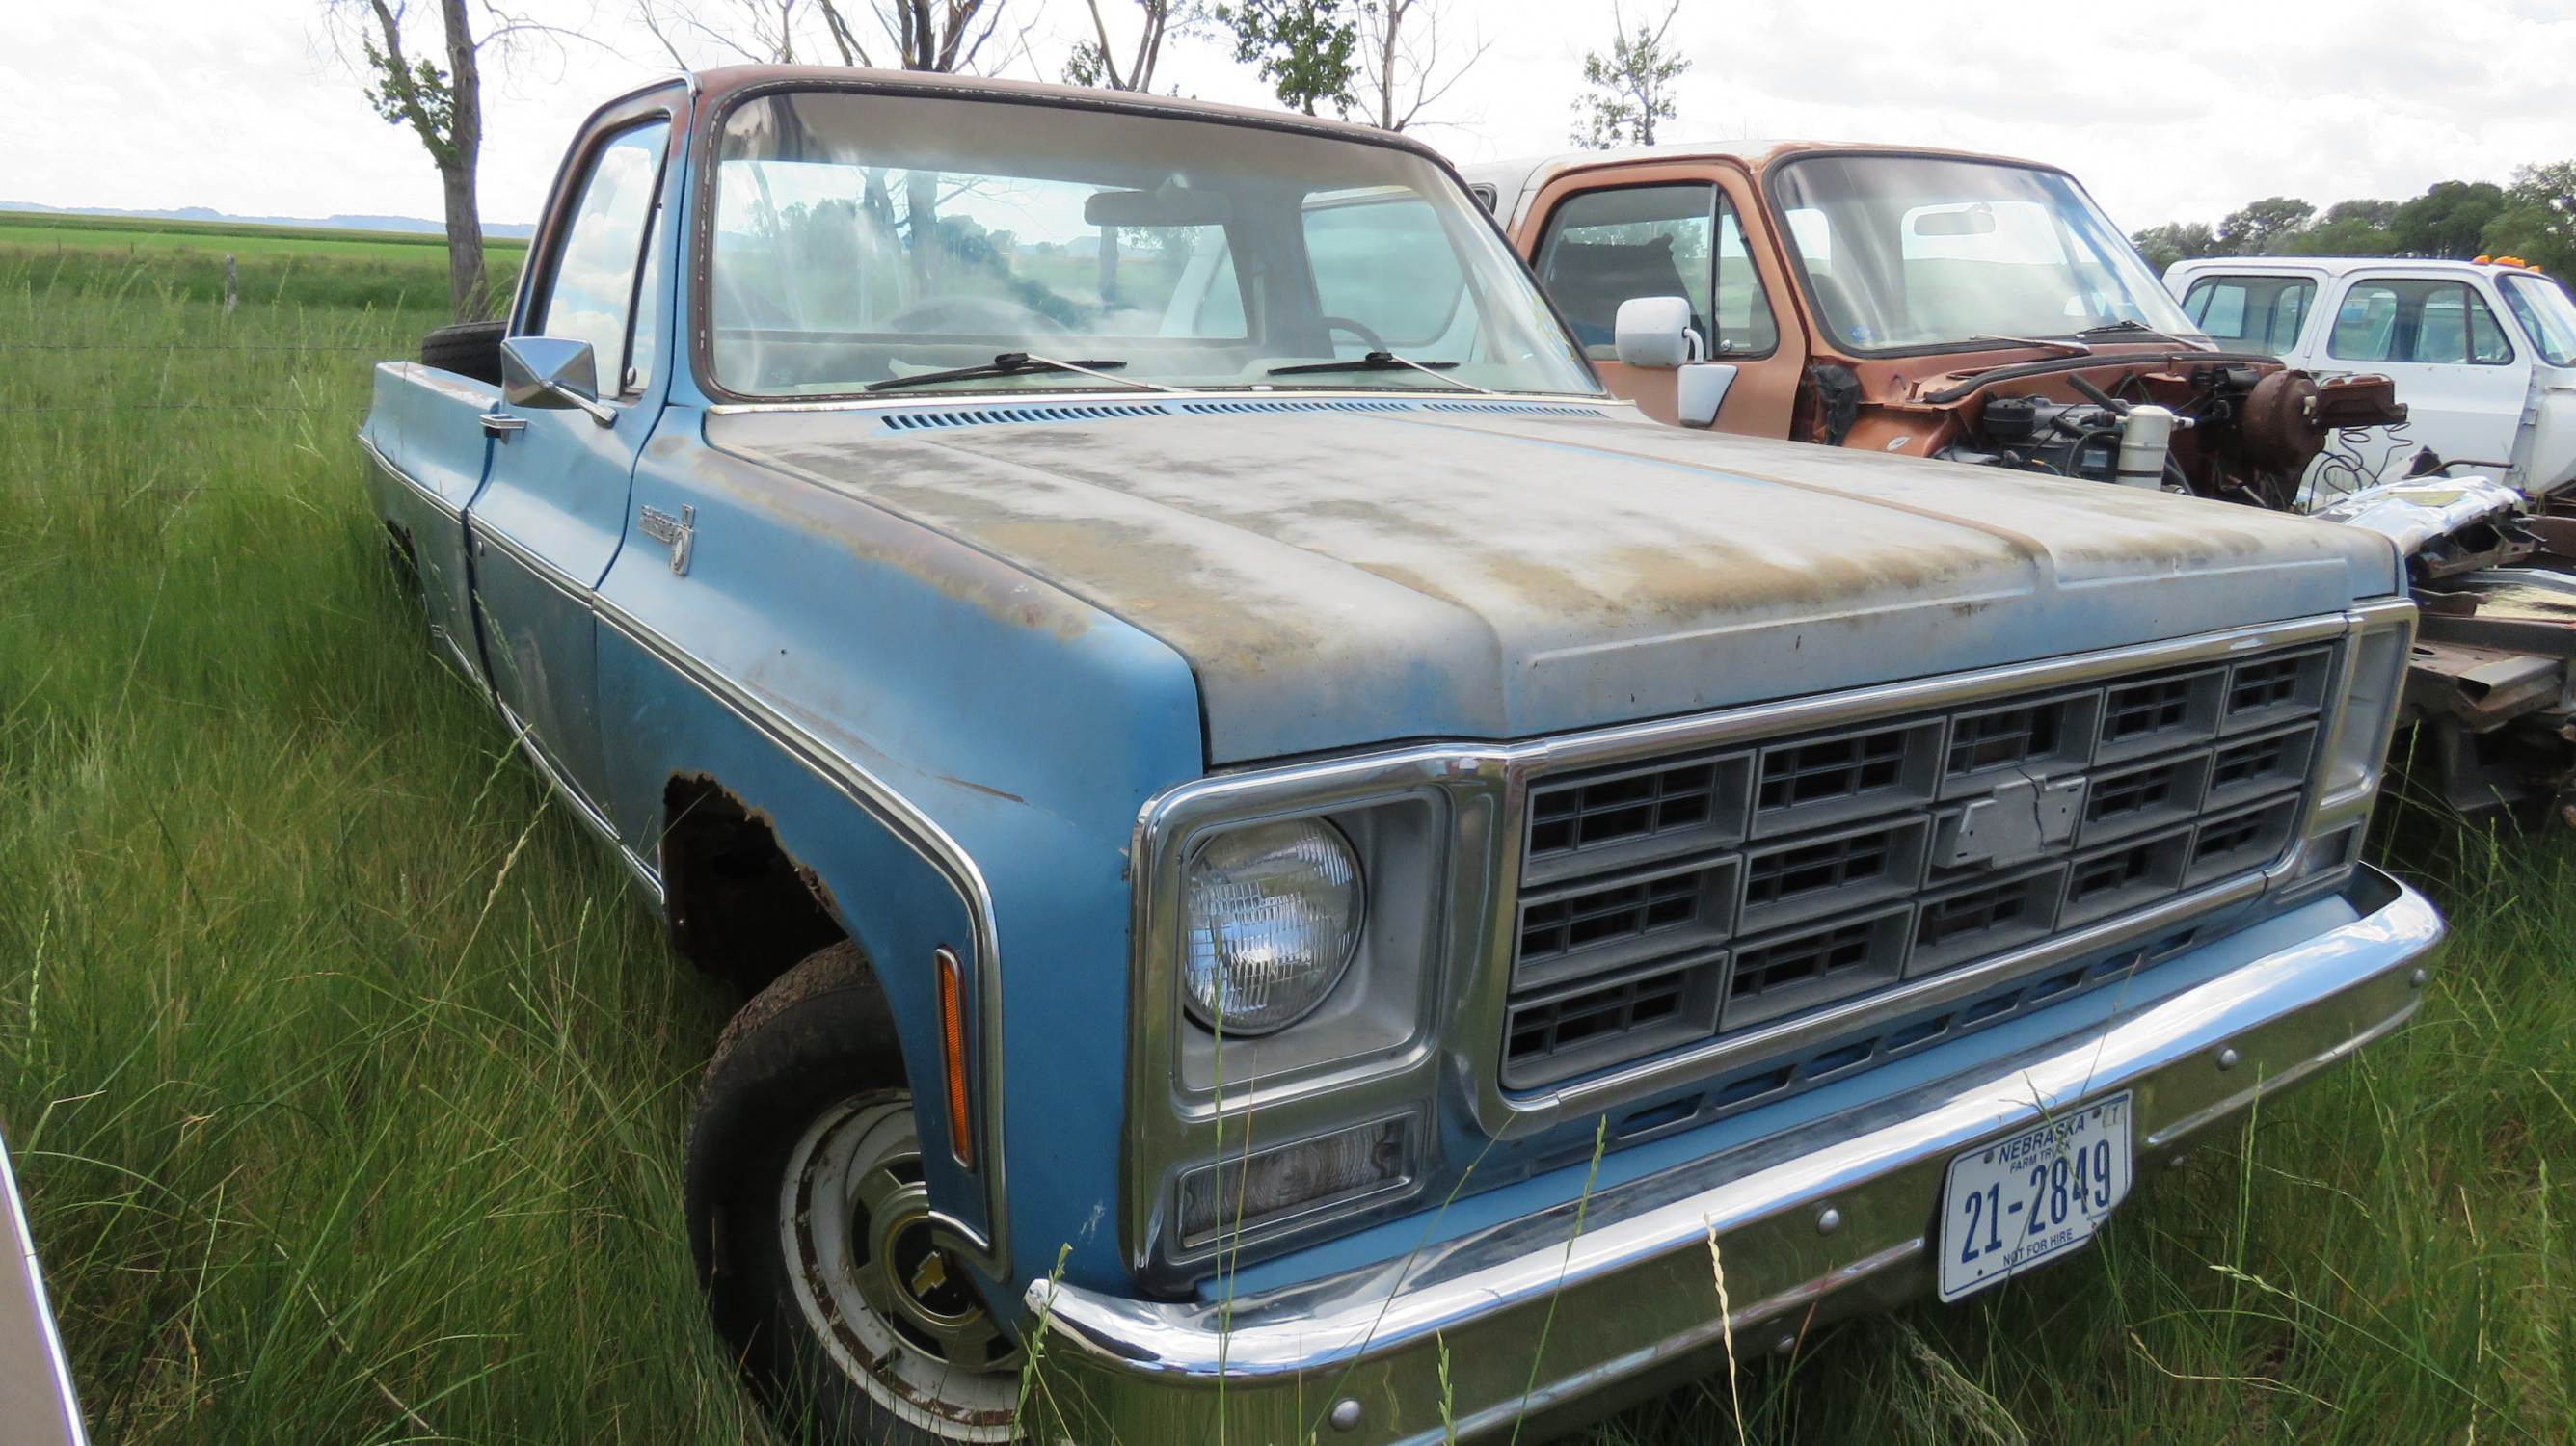 1979 Chevrolet Scottsdale Pickup - Image 2